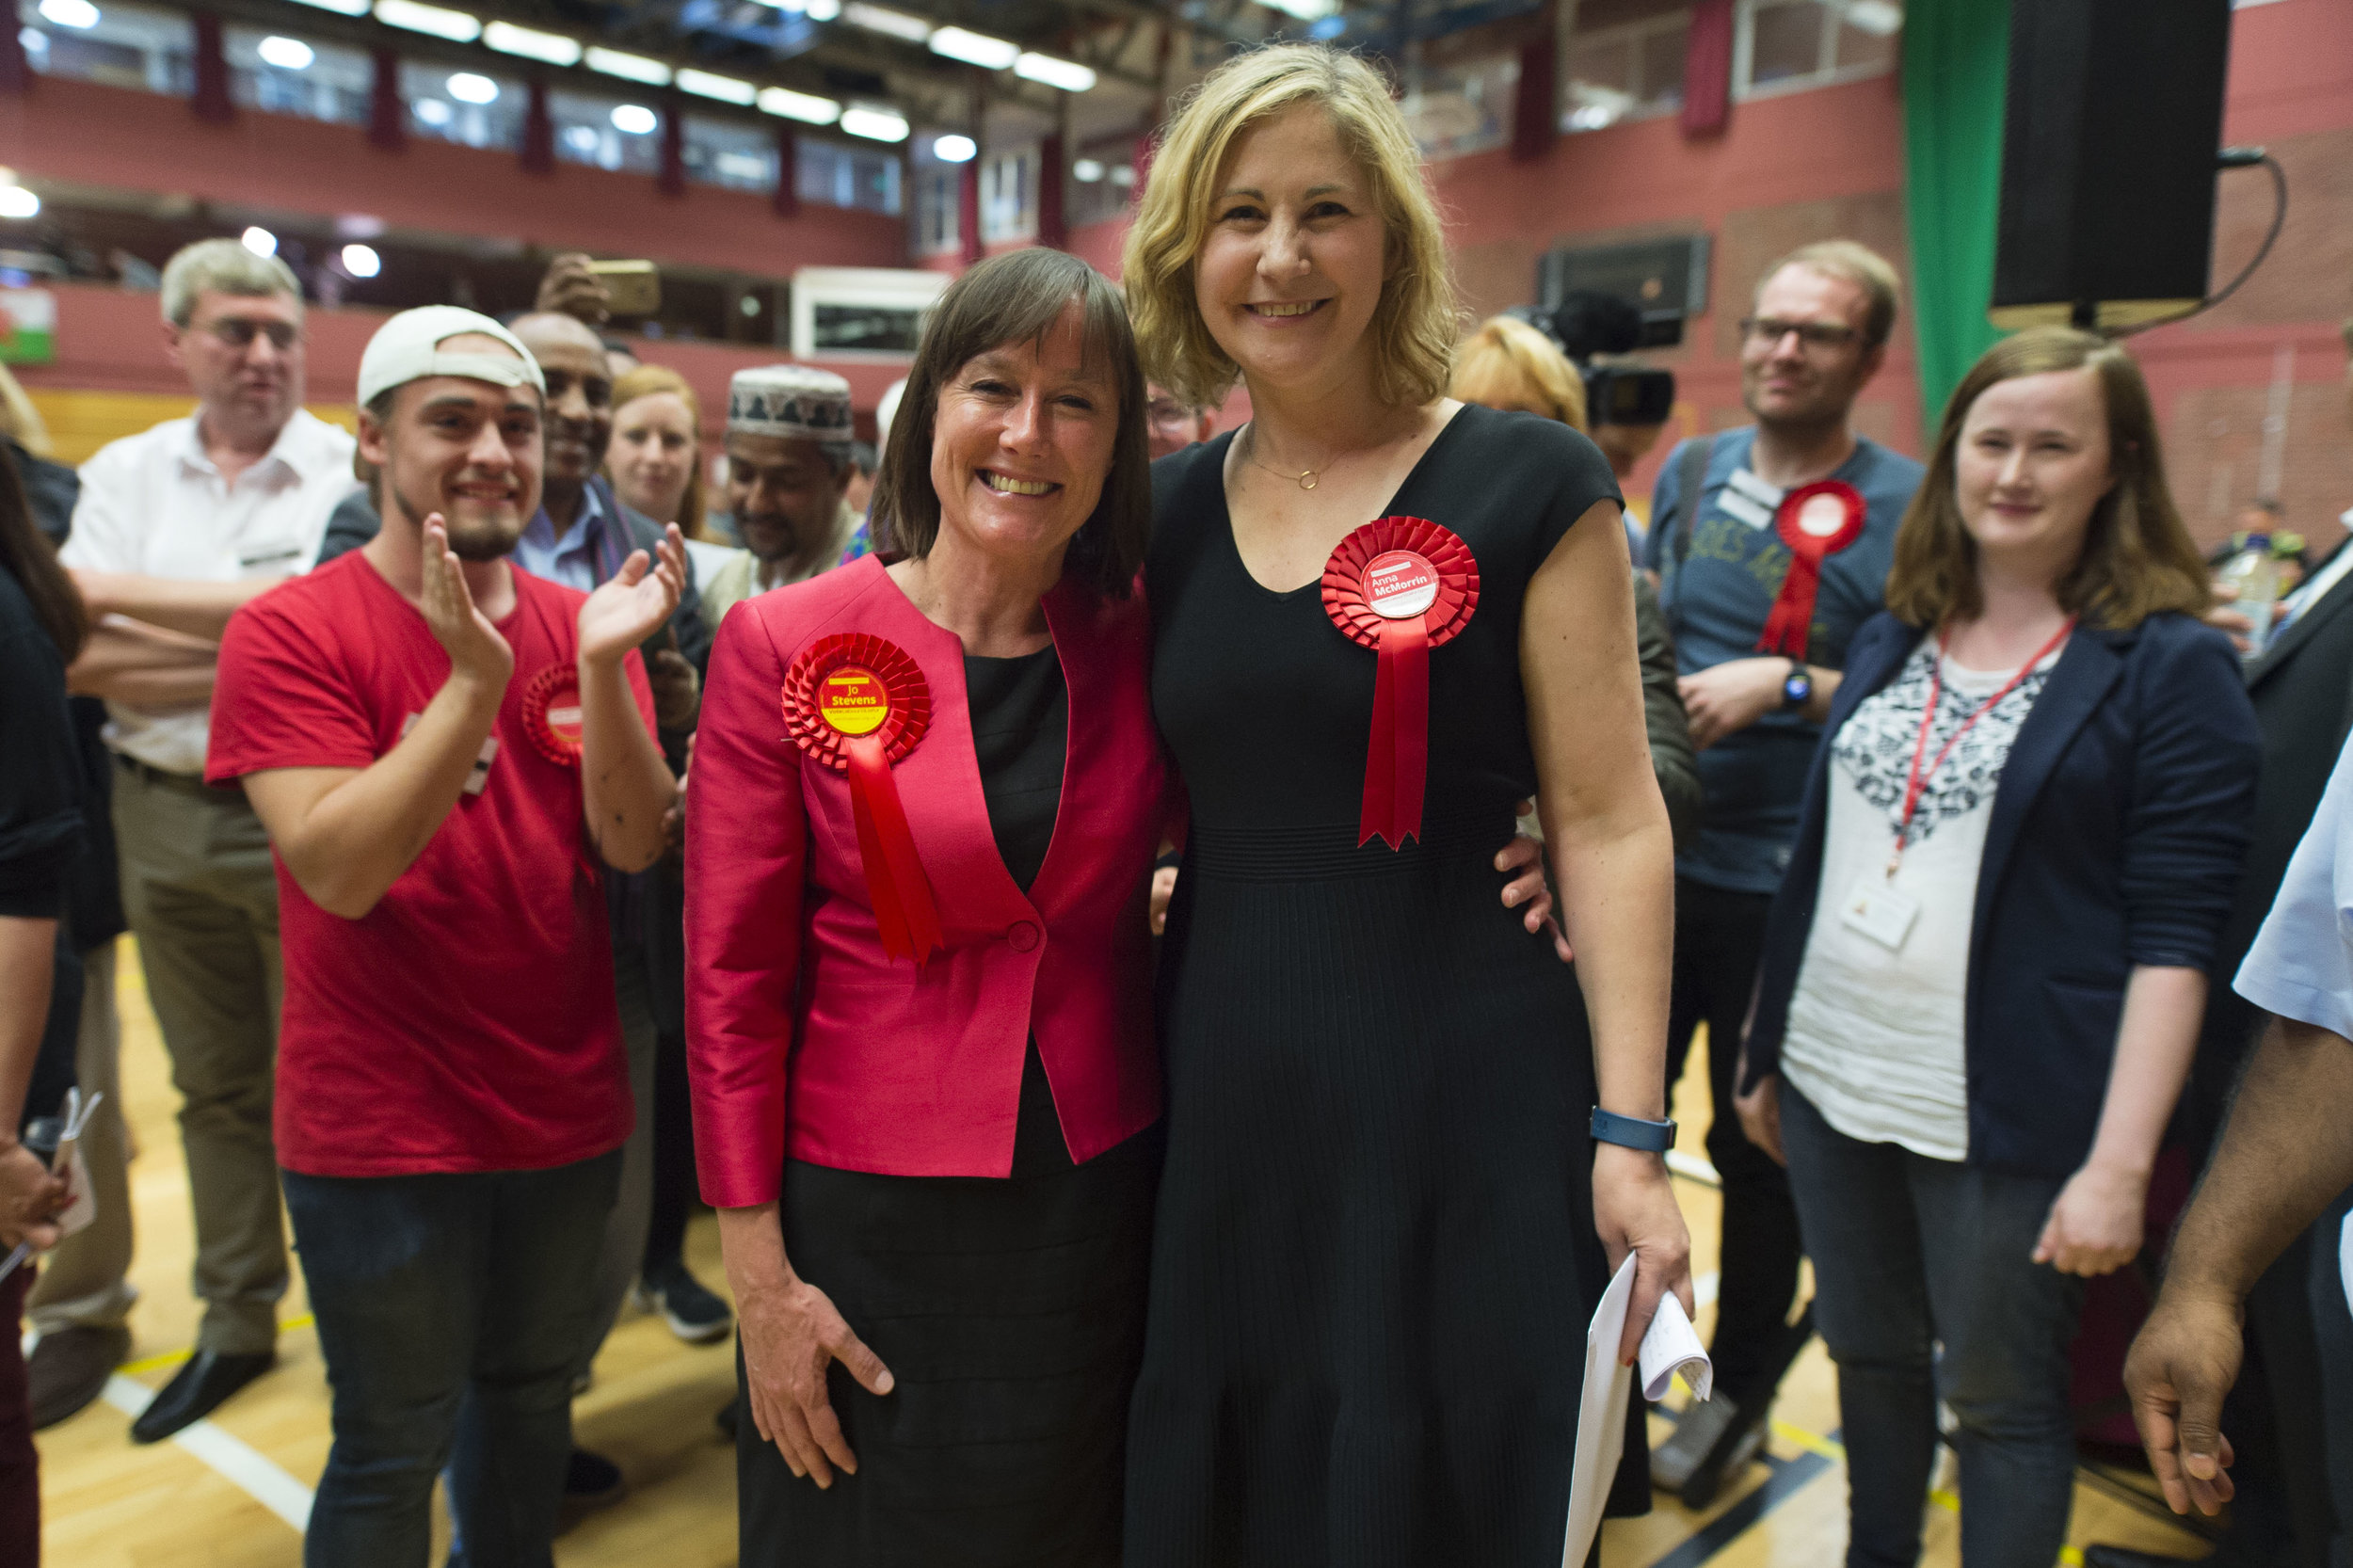 CARDIFF, UNITED KINGDOM - JUNE 09: Jo Stevens, Labour MP for Cardiff Central and Anna Anna McMorrin, Labour MP for Cardiff North pose for a picture after winning their respective seats at the Sport Wales National Centre on June 9, 2017 in Cardiff, United Kingdom. After a snap election was called, the United Kingdom went to the polls yesterday following a closely fought election. The results from across the country are being counted and an overall result is expected in the early hours. (Photo by Matthew Horwood/Getty Images)